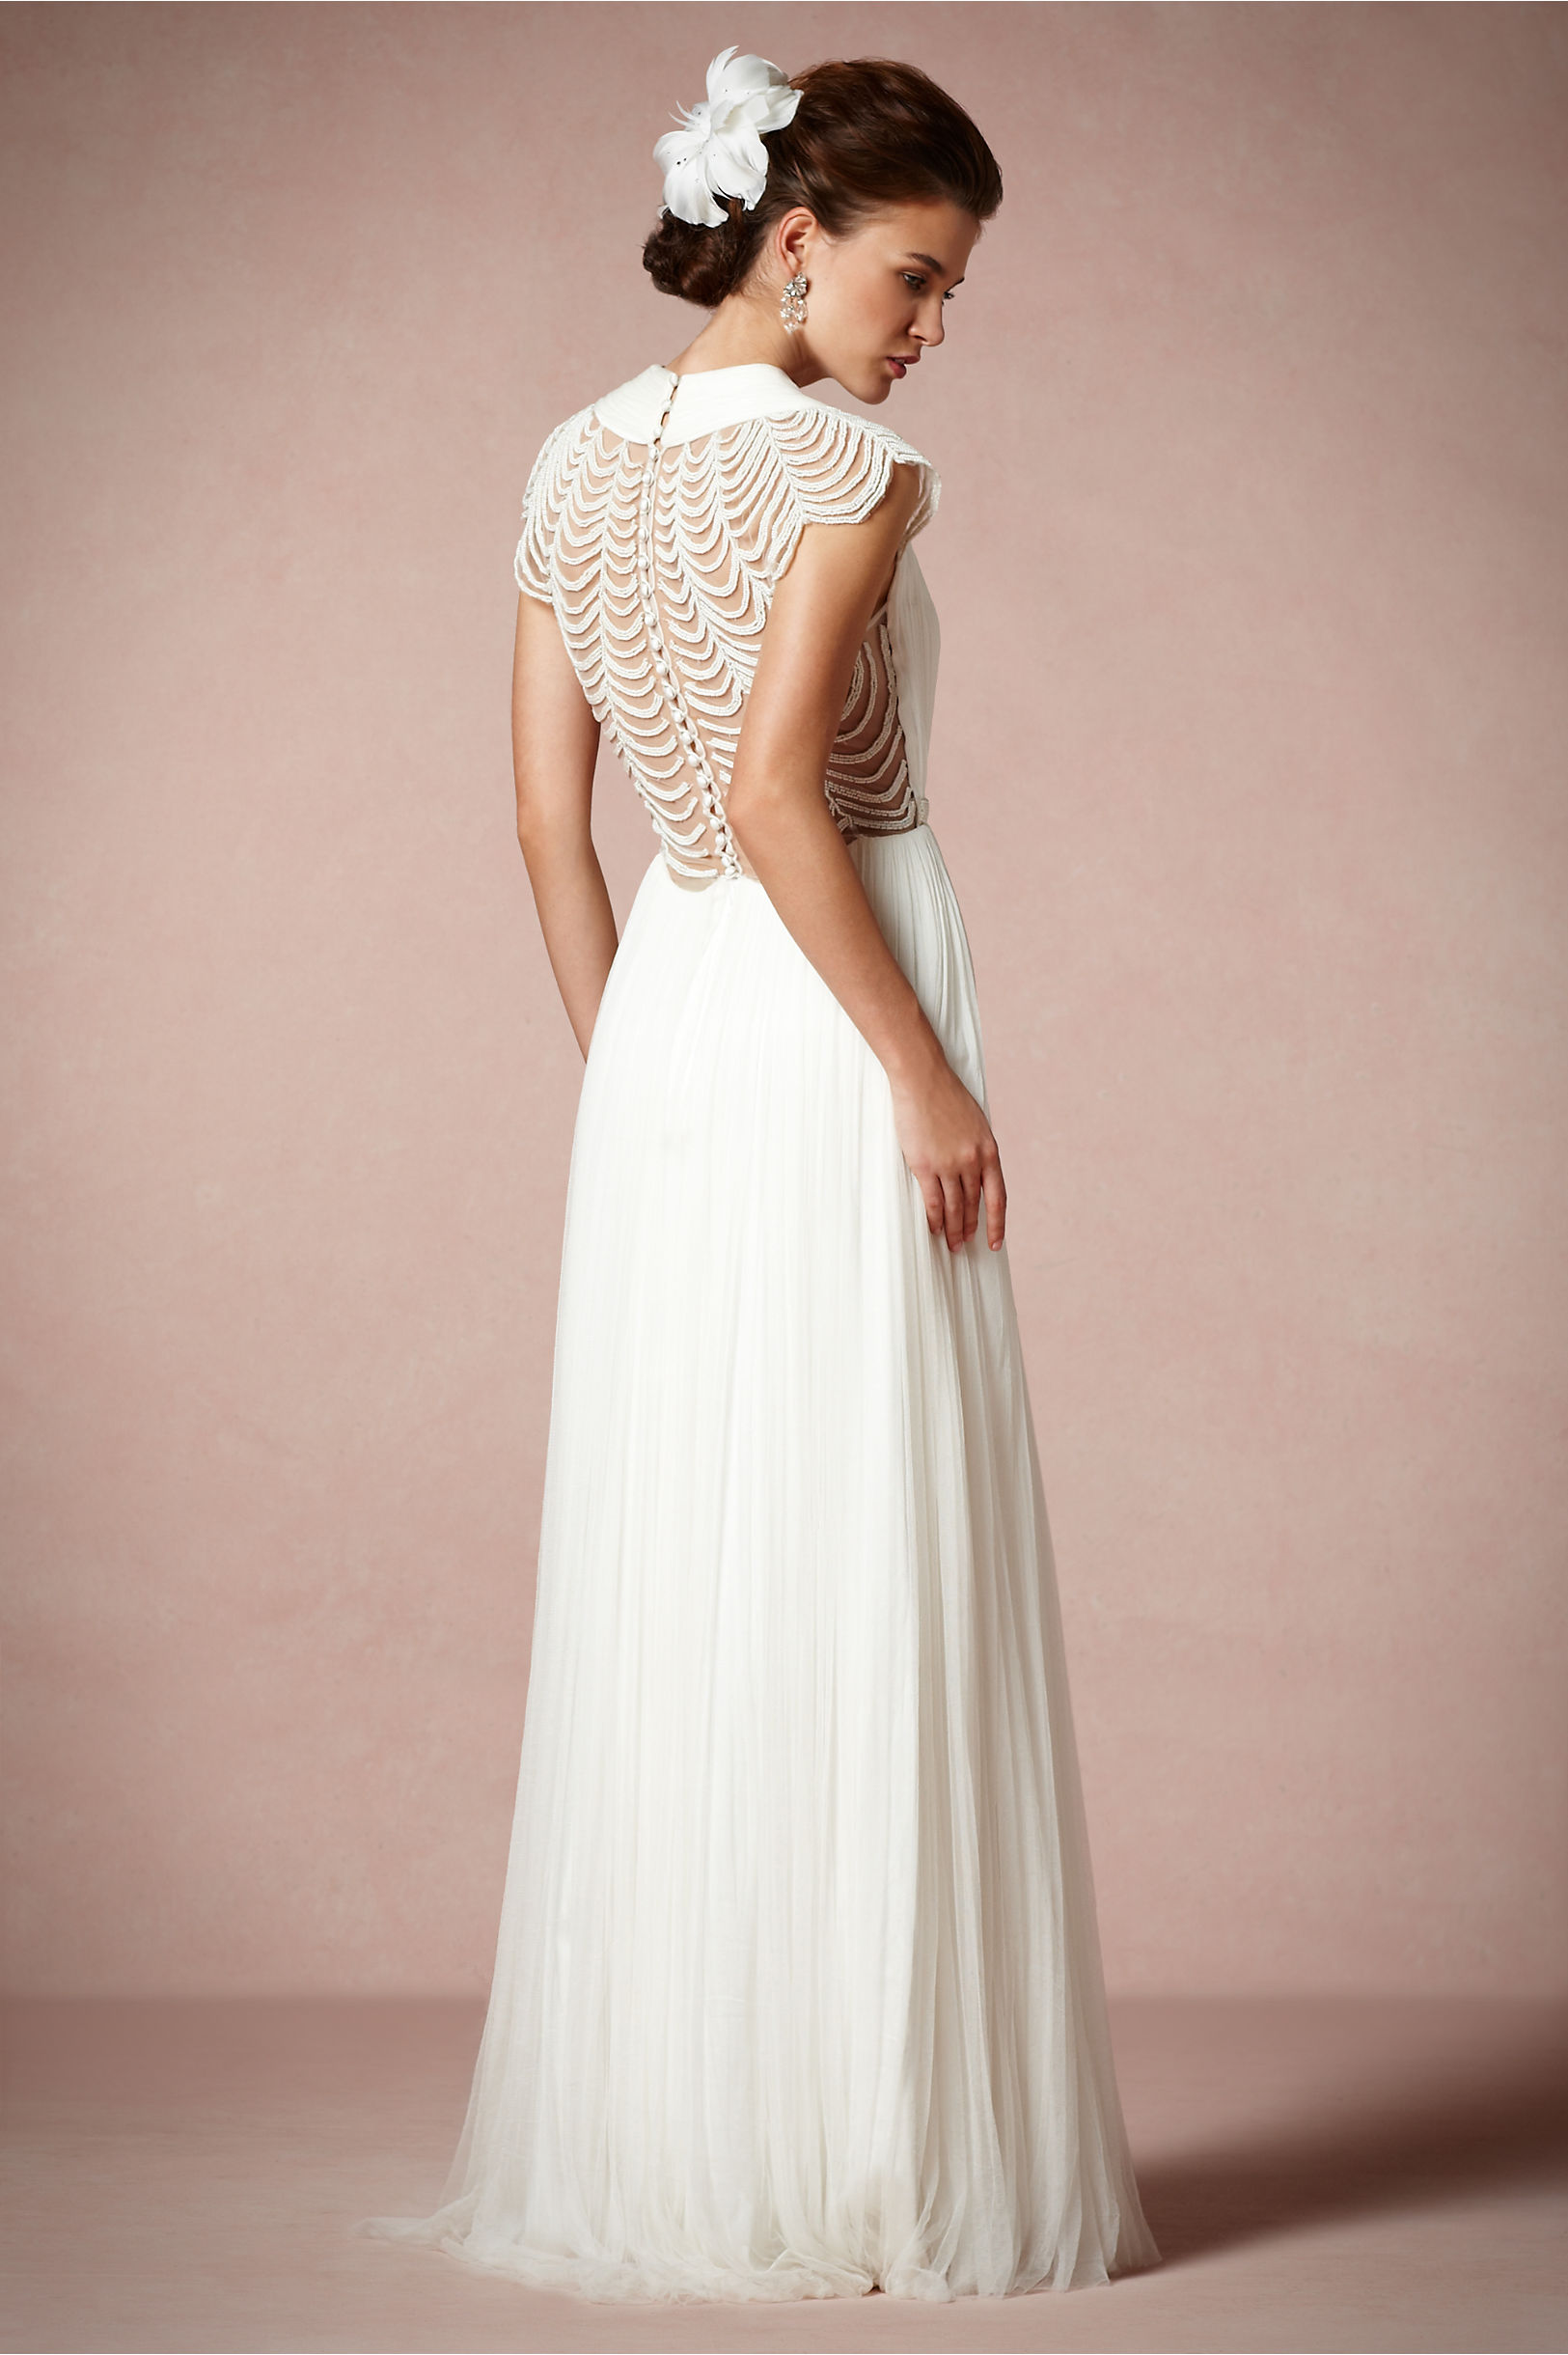 Ortensia Gown in Bride | BHLDN